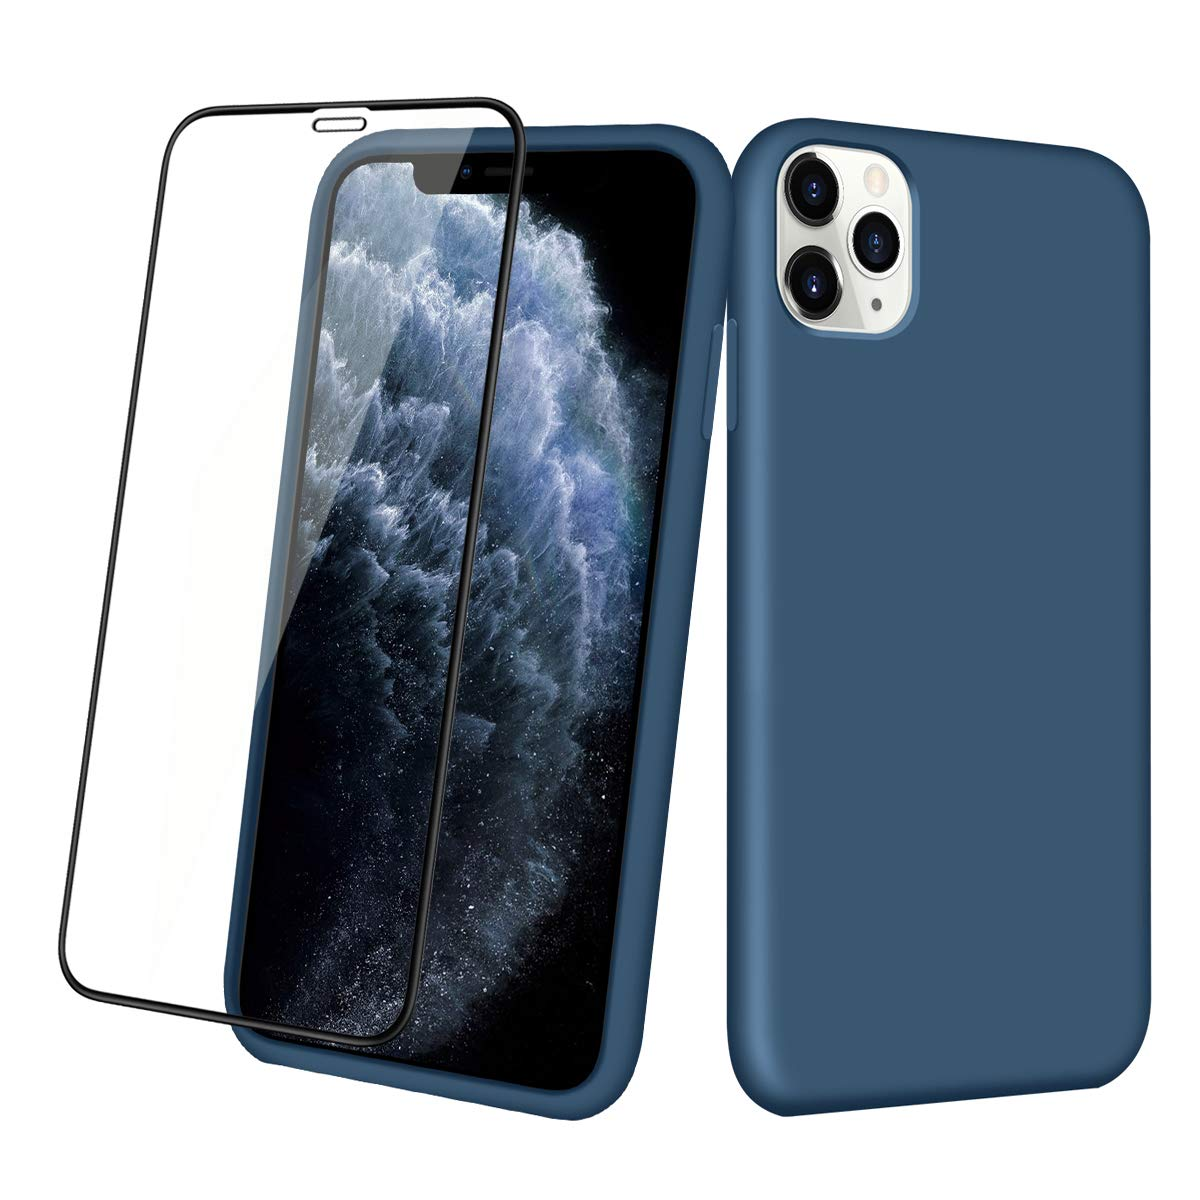 Aemotoy Case for iPhone 11 Pro Max Soft Rubber Silicone Case Full Body Wrapped 2 in 1 with Tempered Glass Anti-Scratch Shock Absorption Slim Cover Case for 2019 Release iPhone 11 Pro Max, Dark Blue